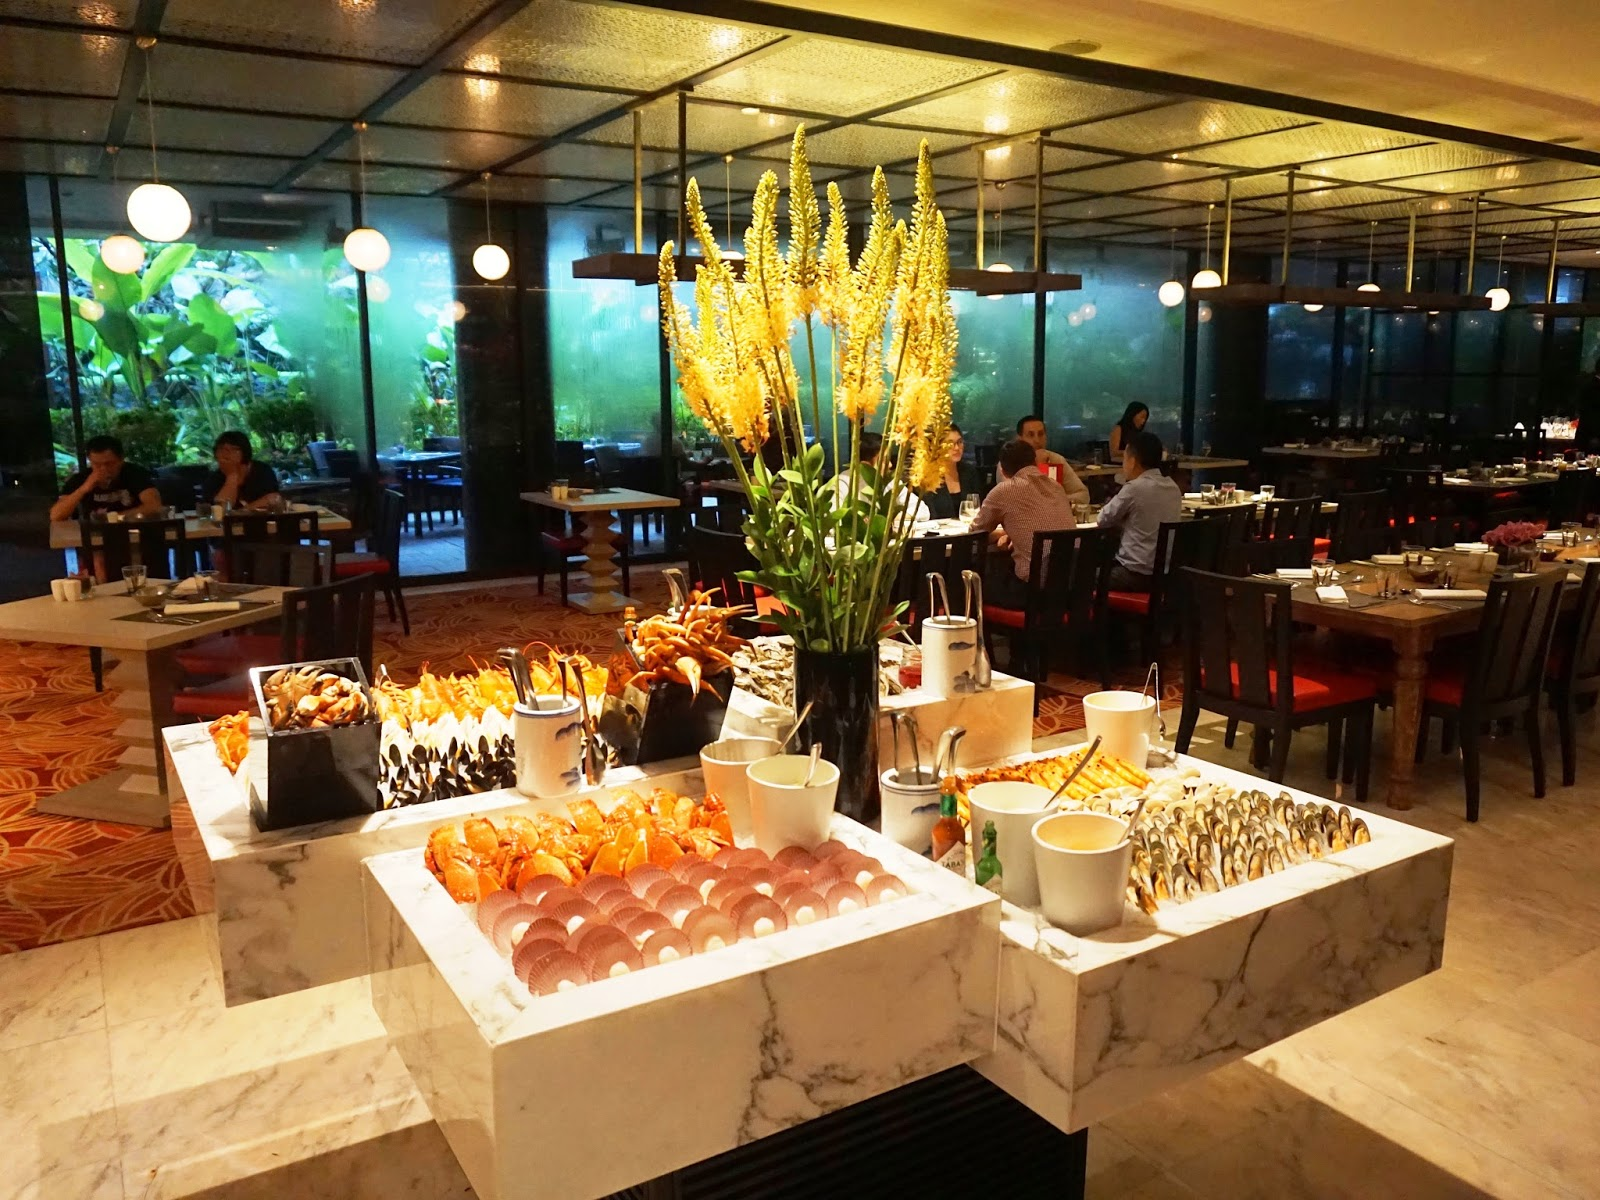 Pinkypiggu melt caf mandarin oriental hotel singapore still one of the best hotel buffets - Hotel mandarin restaurante ...